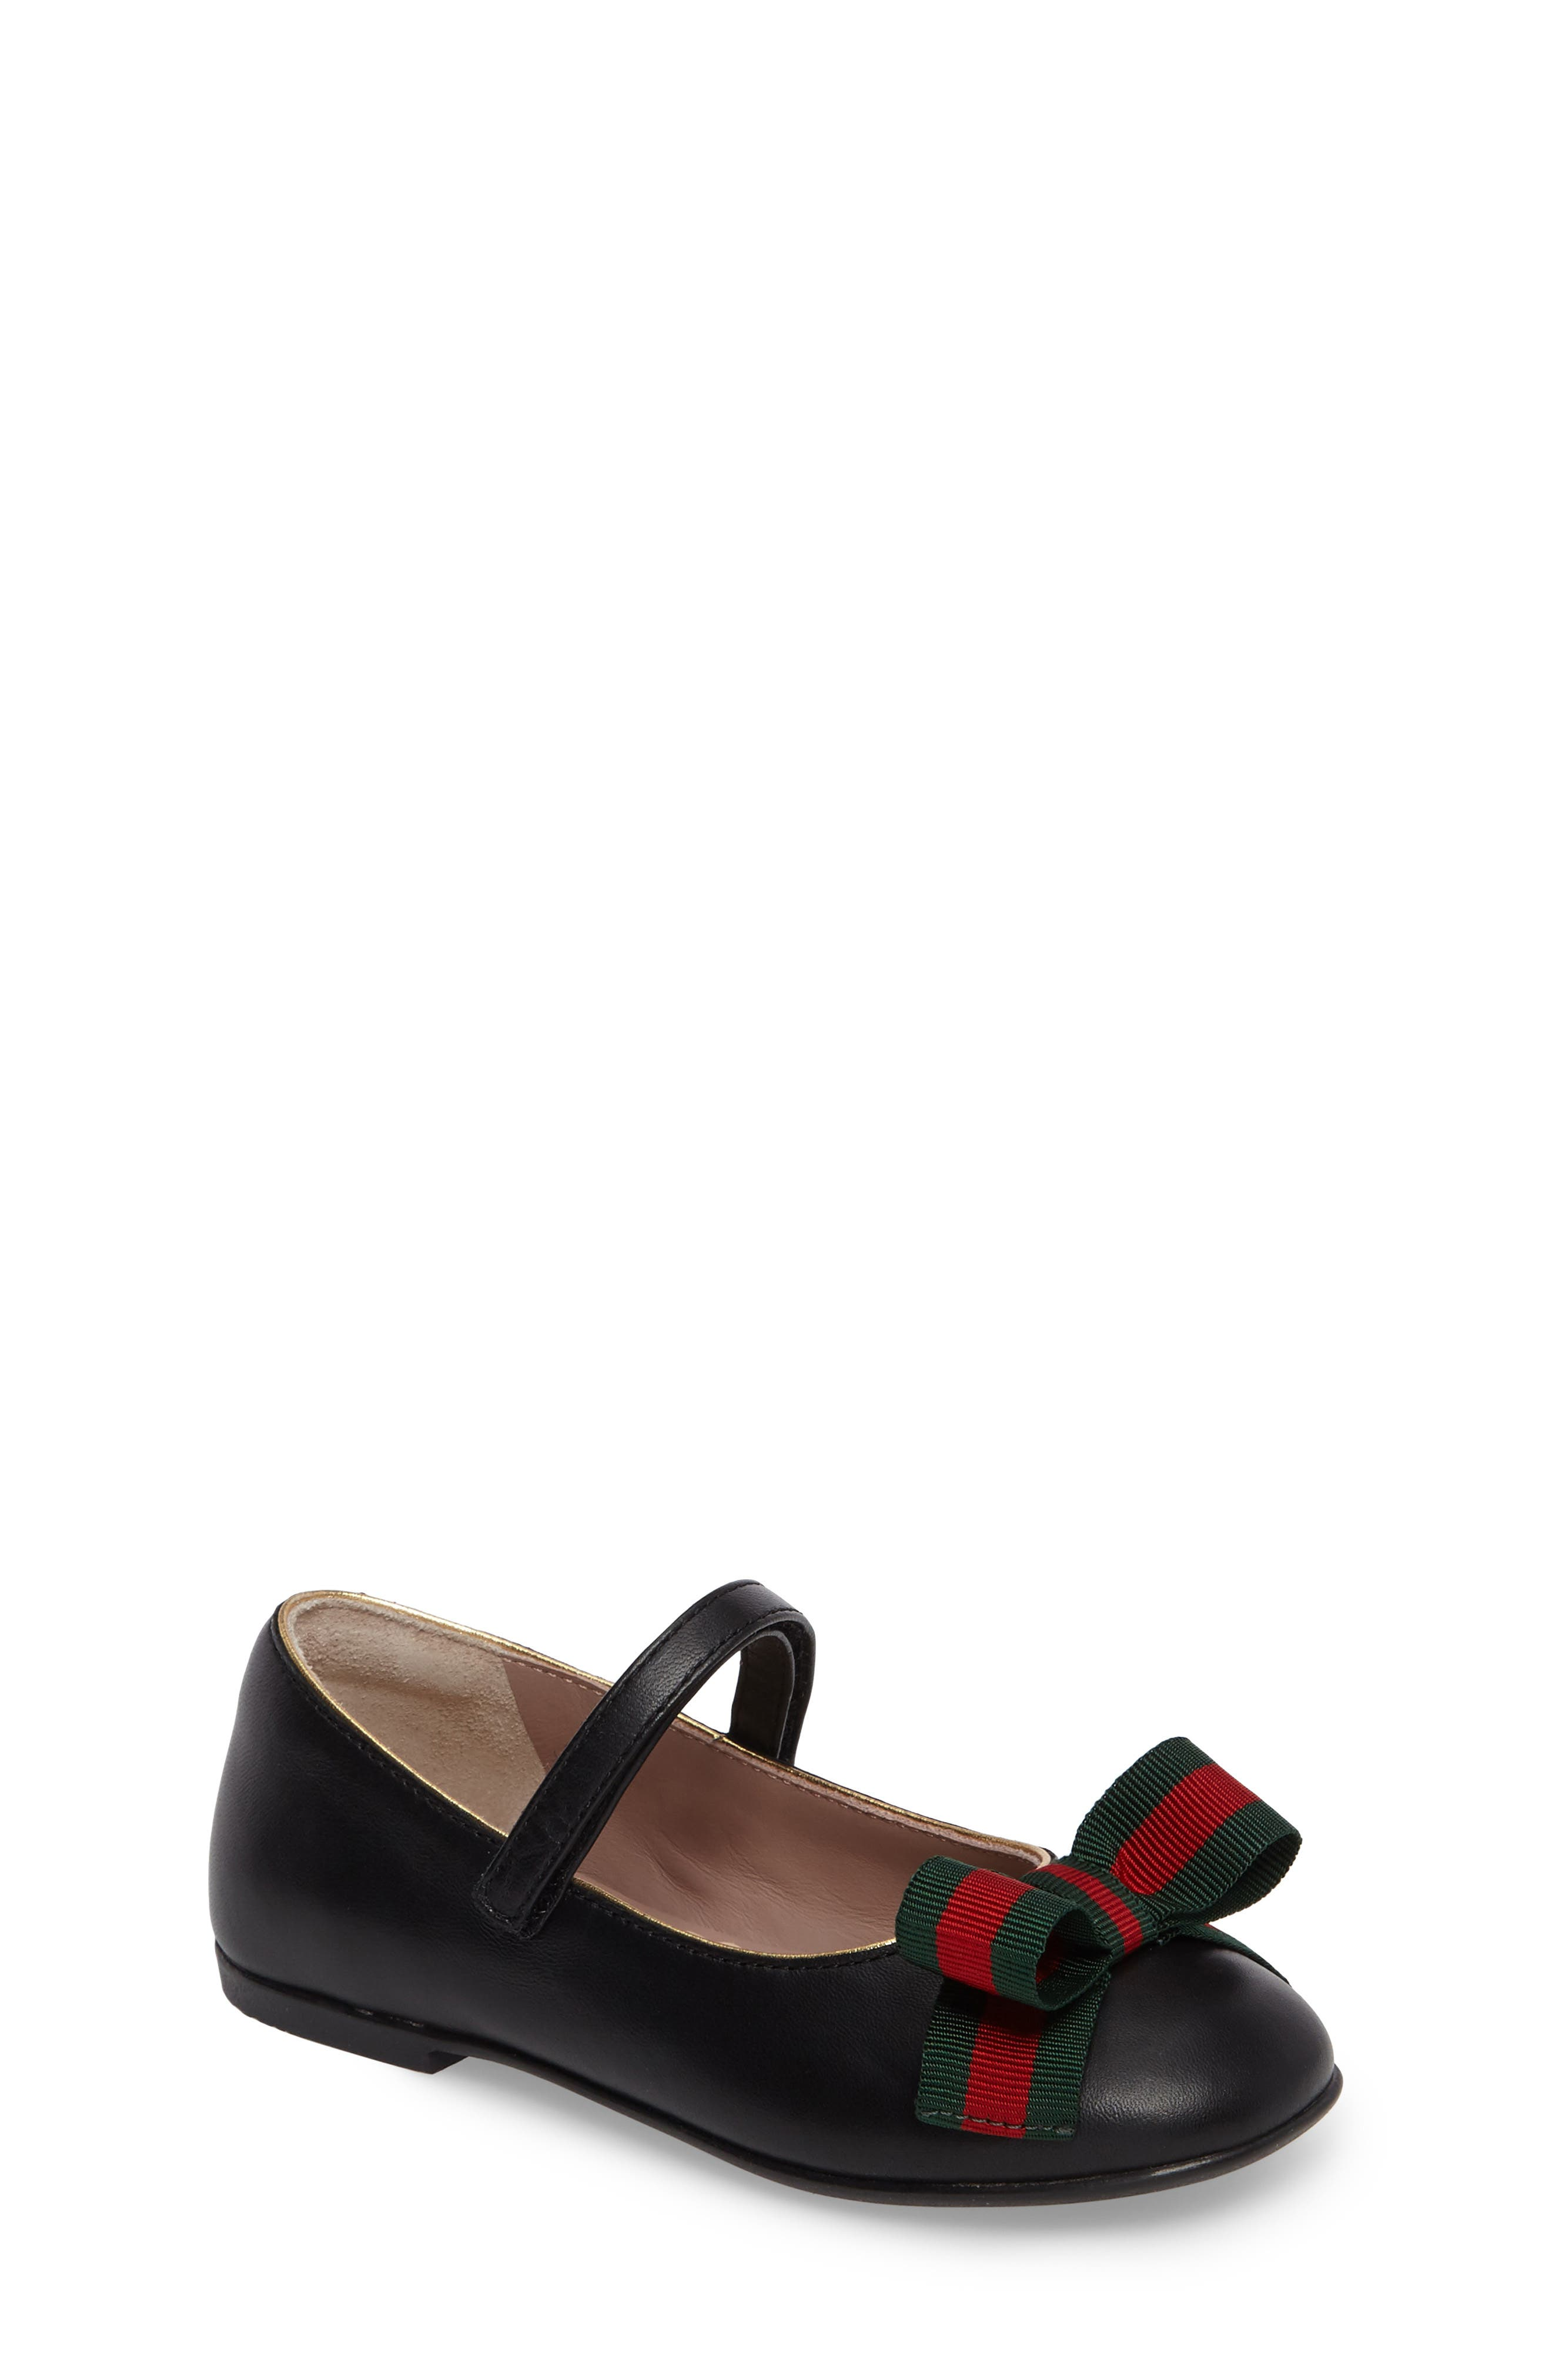 Alternate Image 1 Selected - Gucci Cindy Mary Jane Flat (Baby, Walker, Toddler & Little Kid)